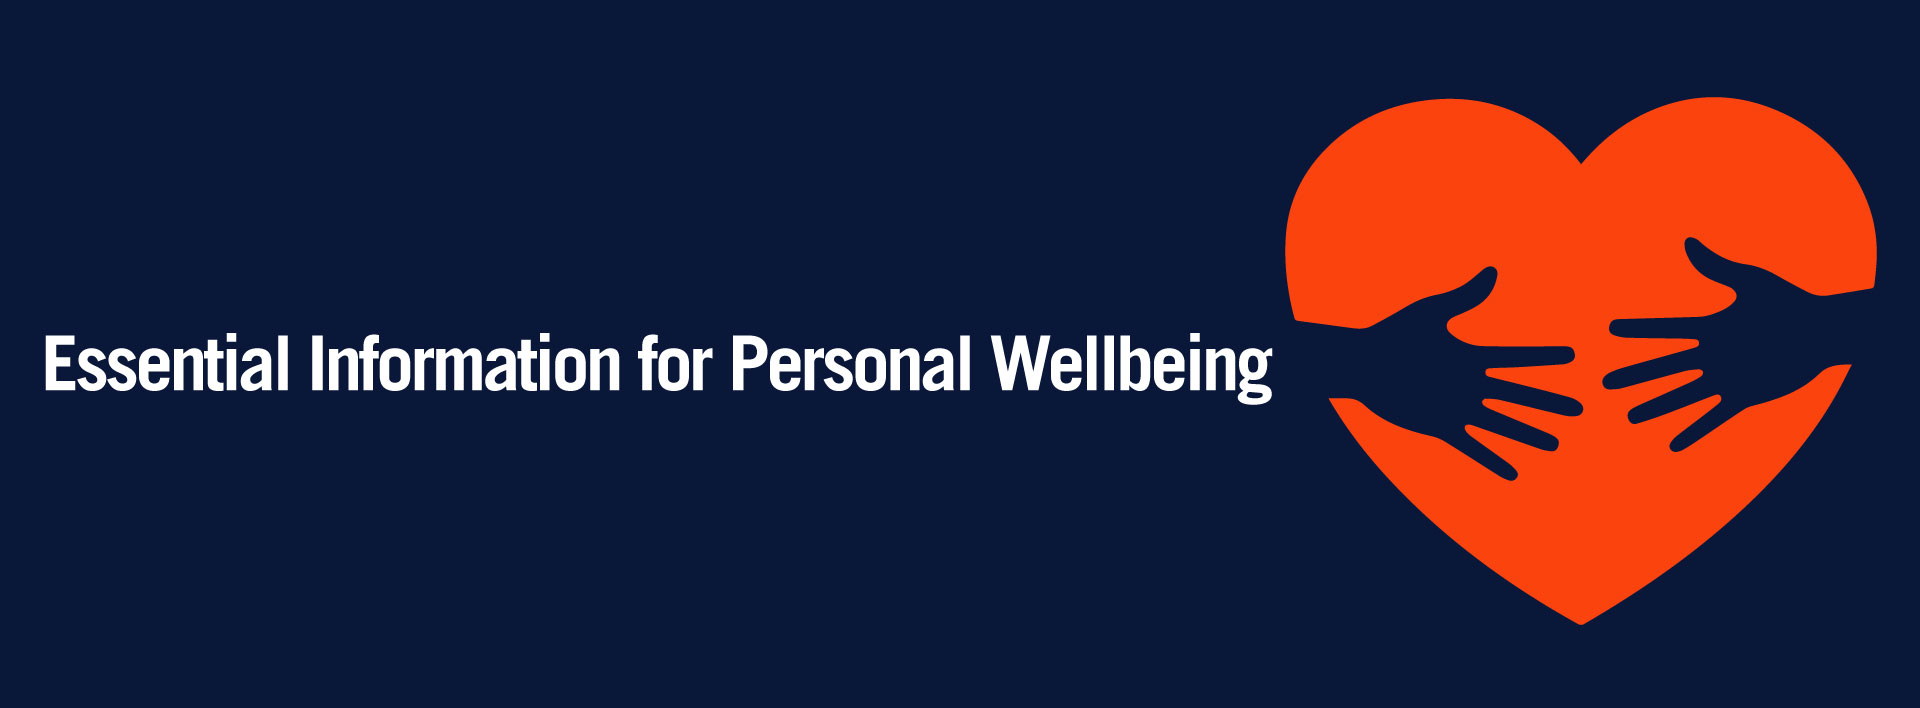 Essential Information for Personal Wellbeing